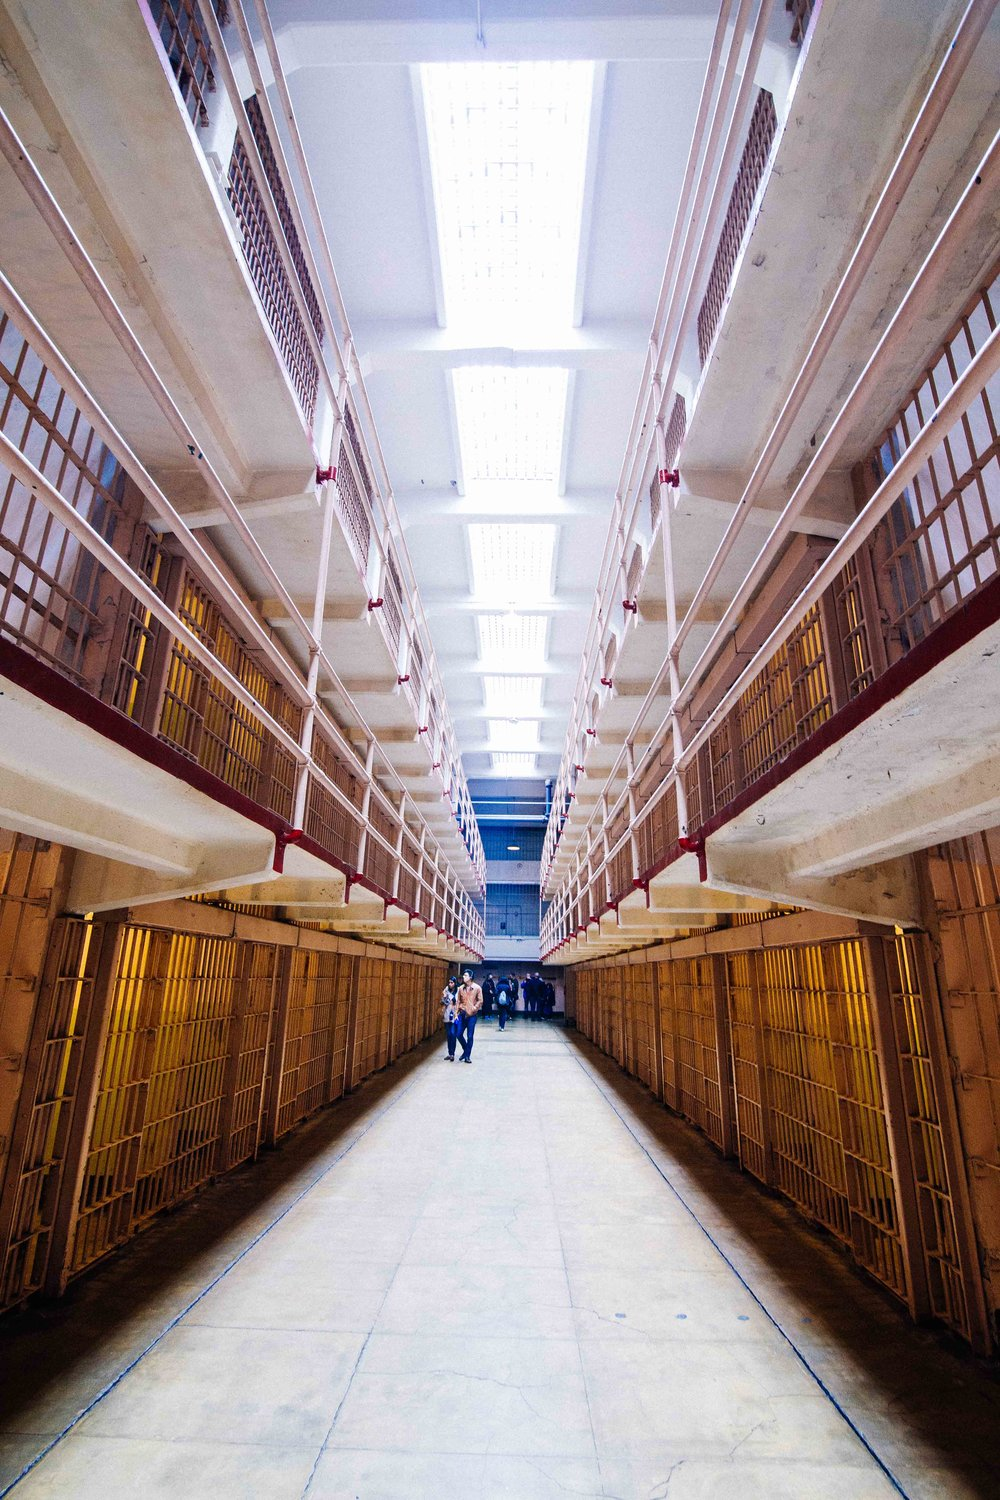 Inside Alcatraz in San Francisco. Photo: Marine Raynard